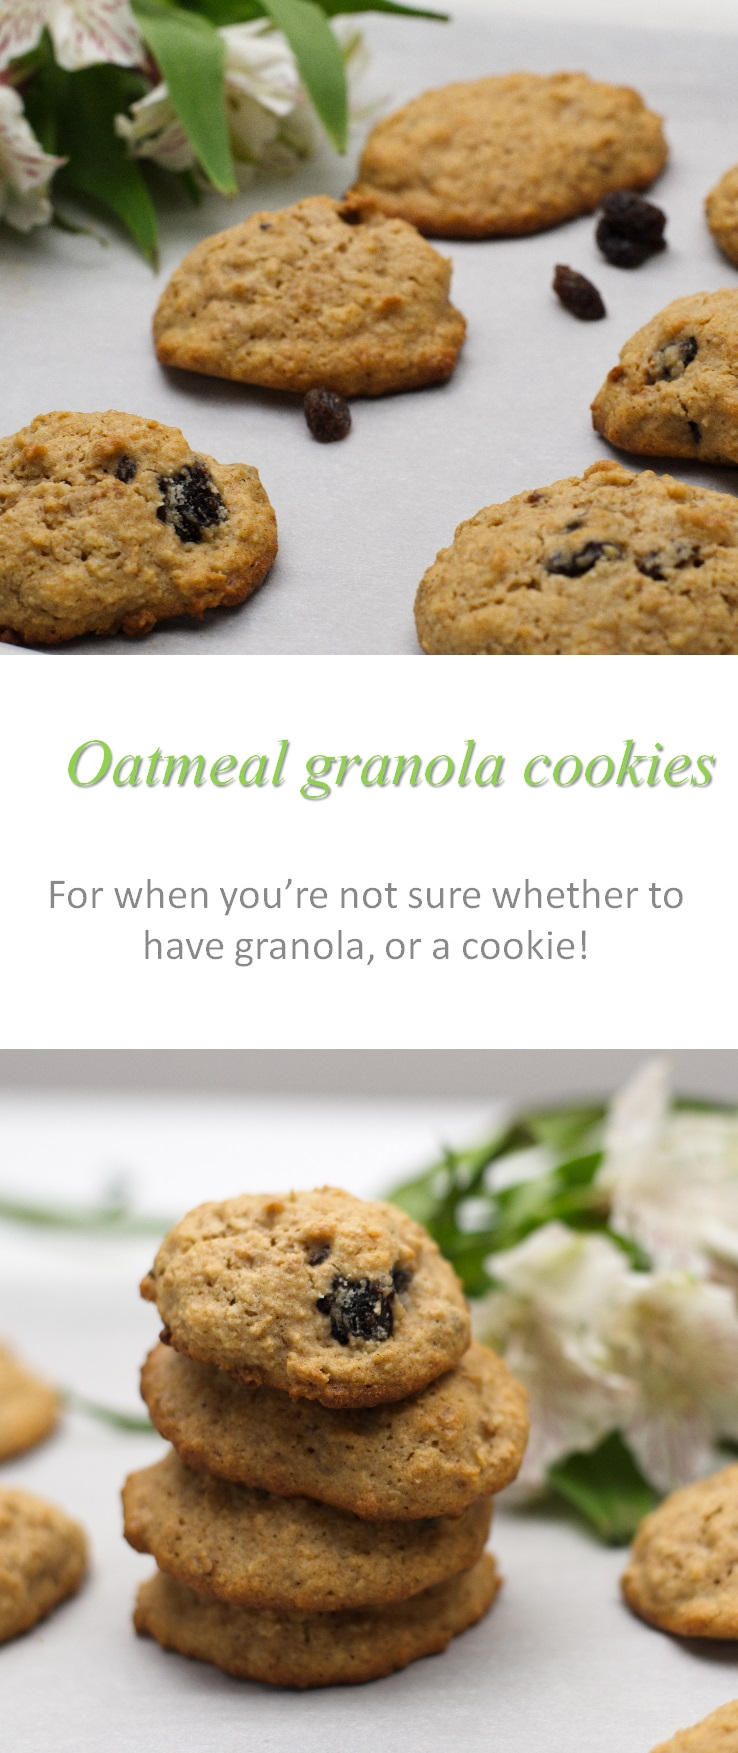 Oatmeal granola cookies - awesome to use up those little bits of granola at the end of the packet! #granola